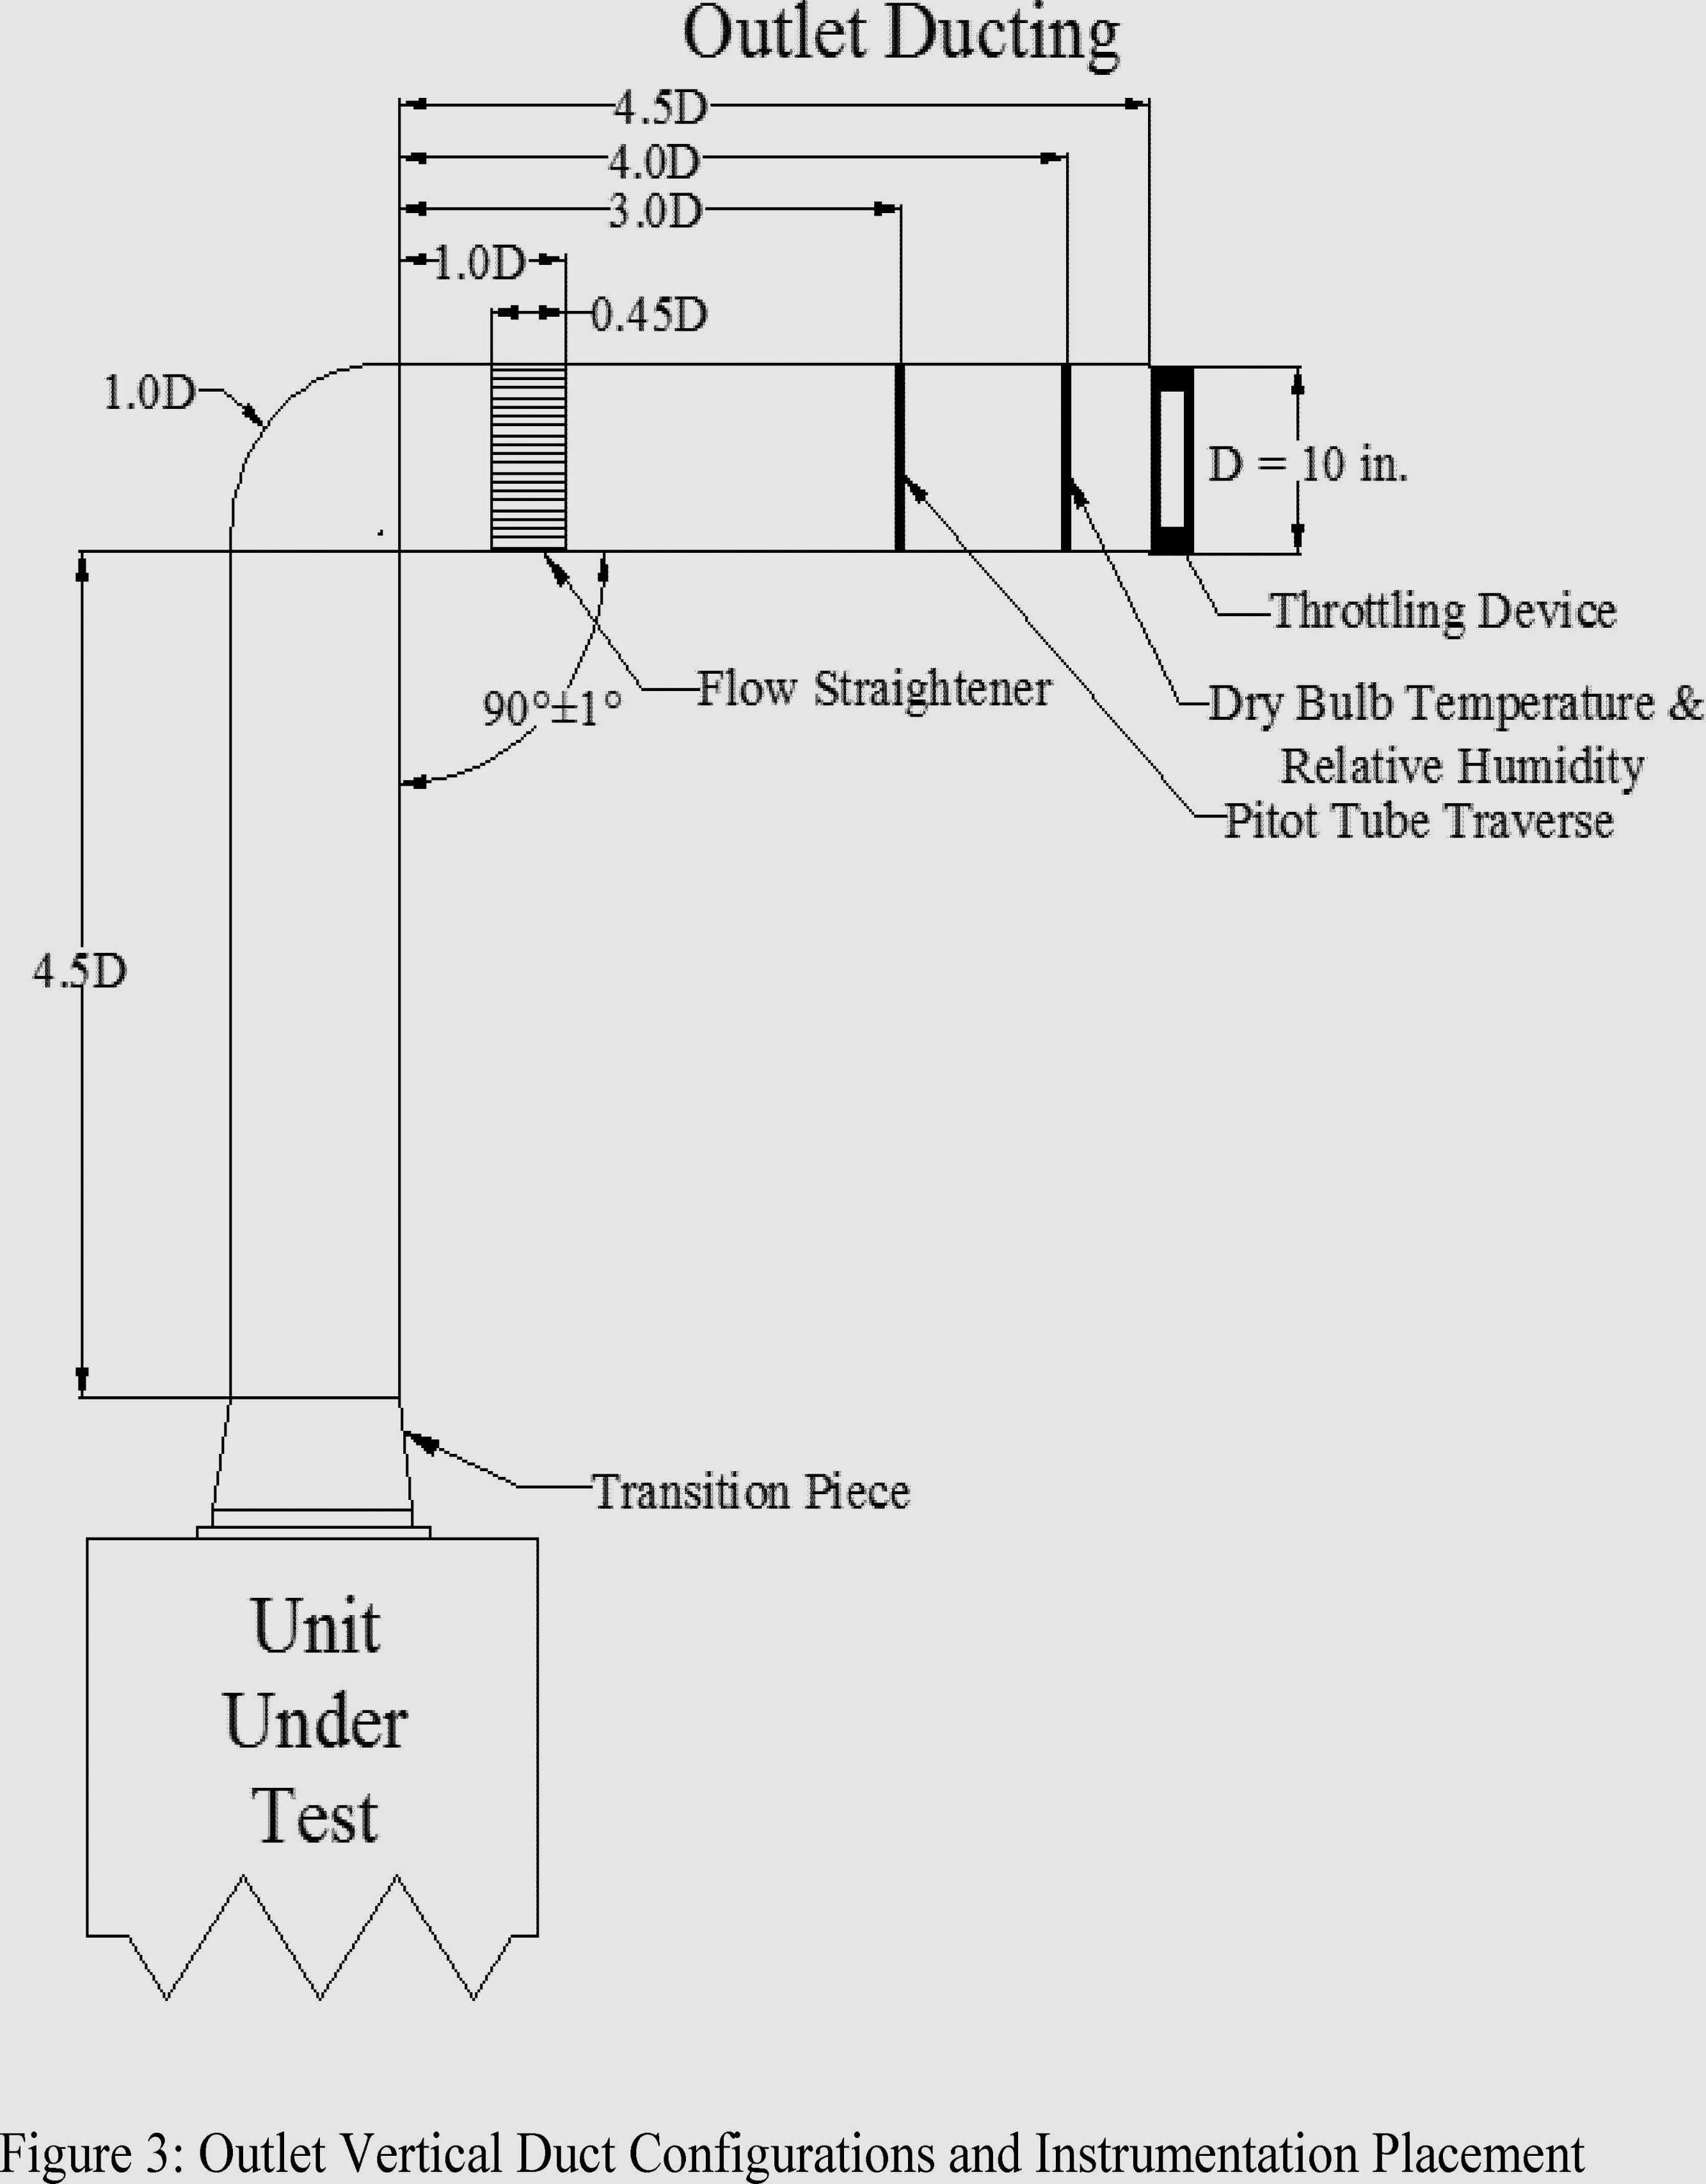 Cable Diagram Cat 5 Ether Cable Wiring Diagram Cat 5 Cable Wiring